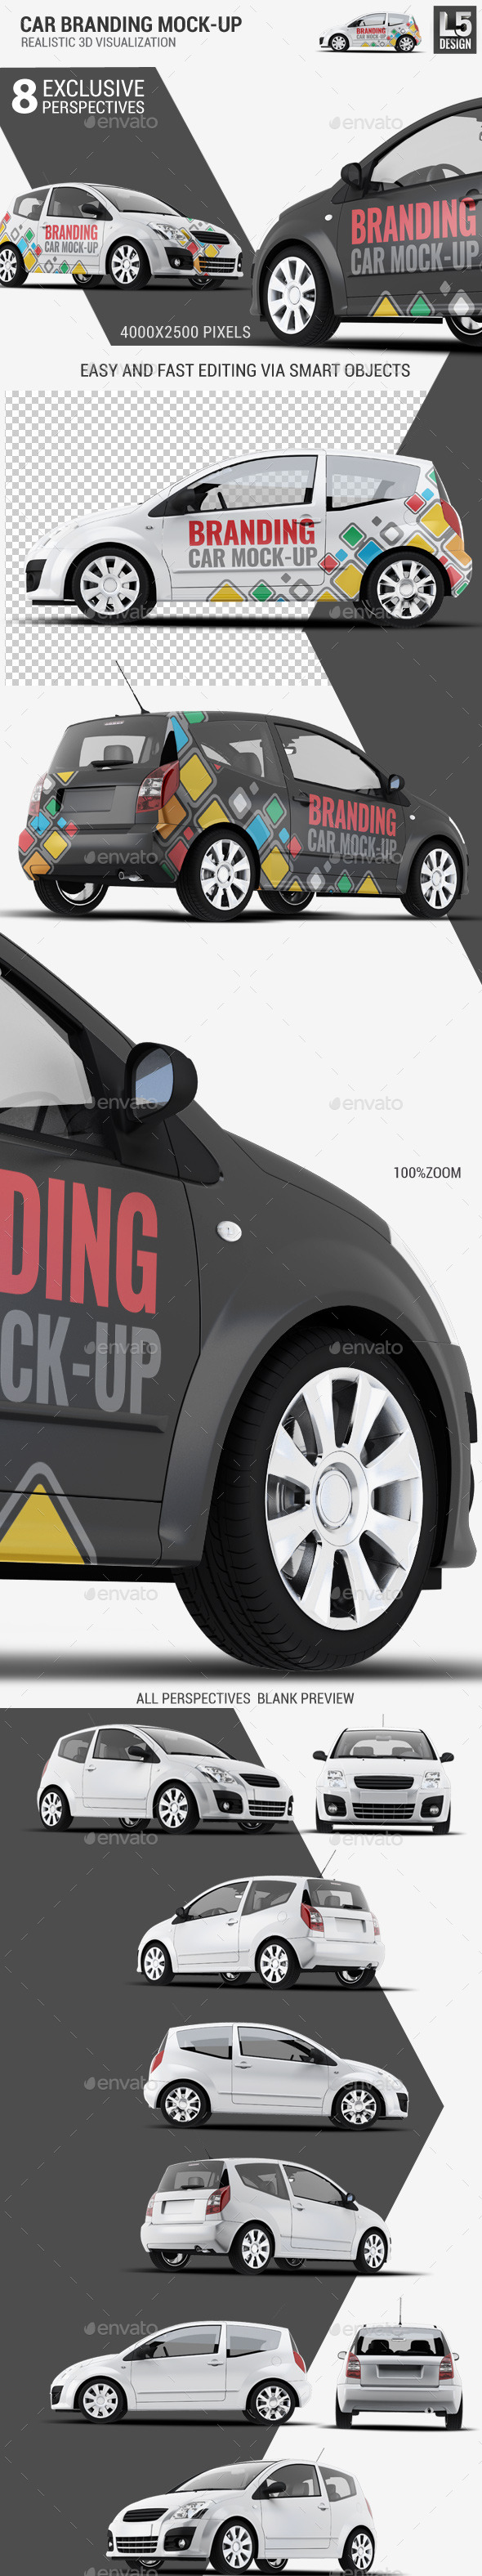 City Car Branding Mock-up - Vehicle Wraps Print